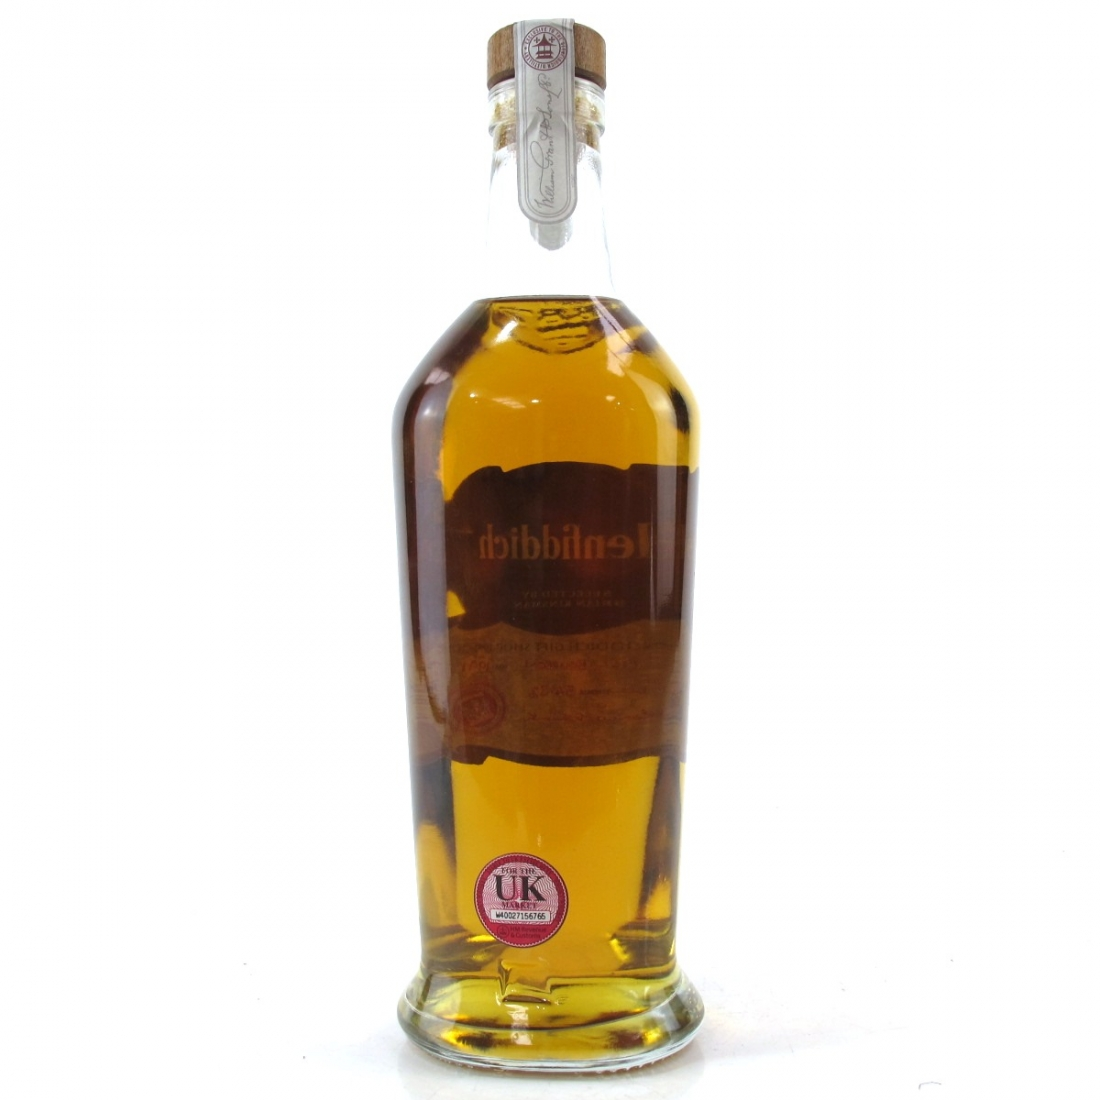 Glenfiddich 1991 Hand Filled First Fill Bourbon 24 Year Old